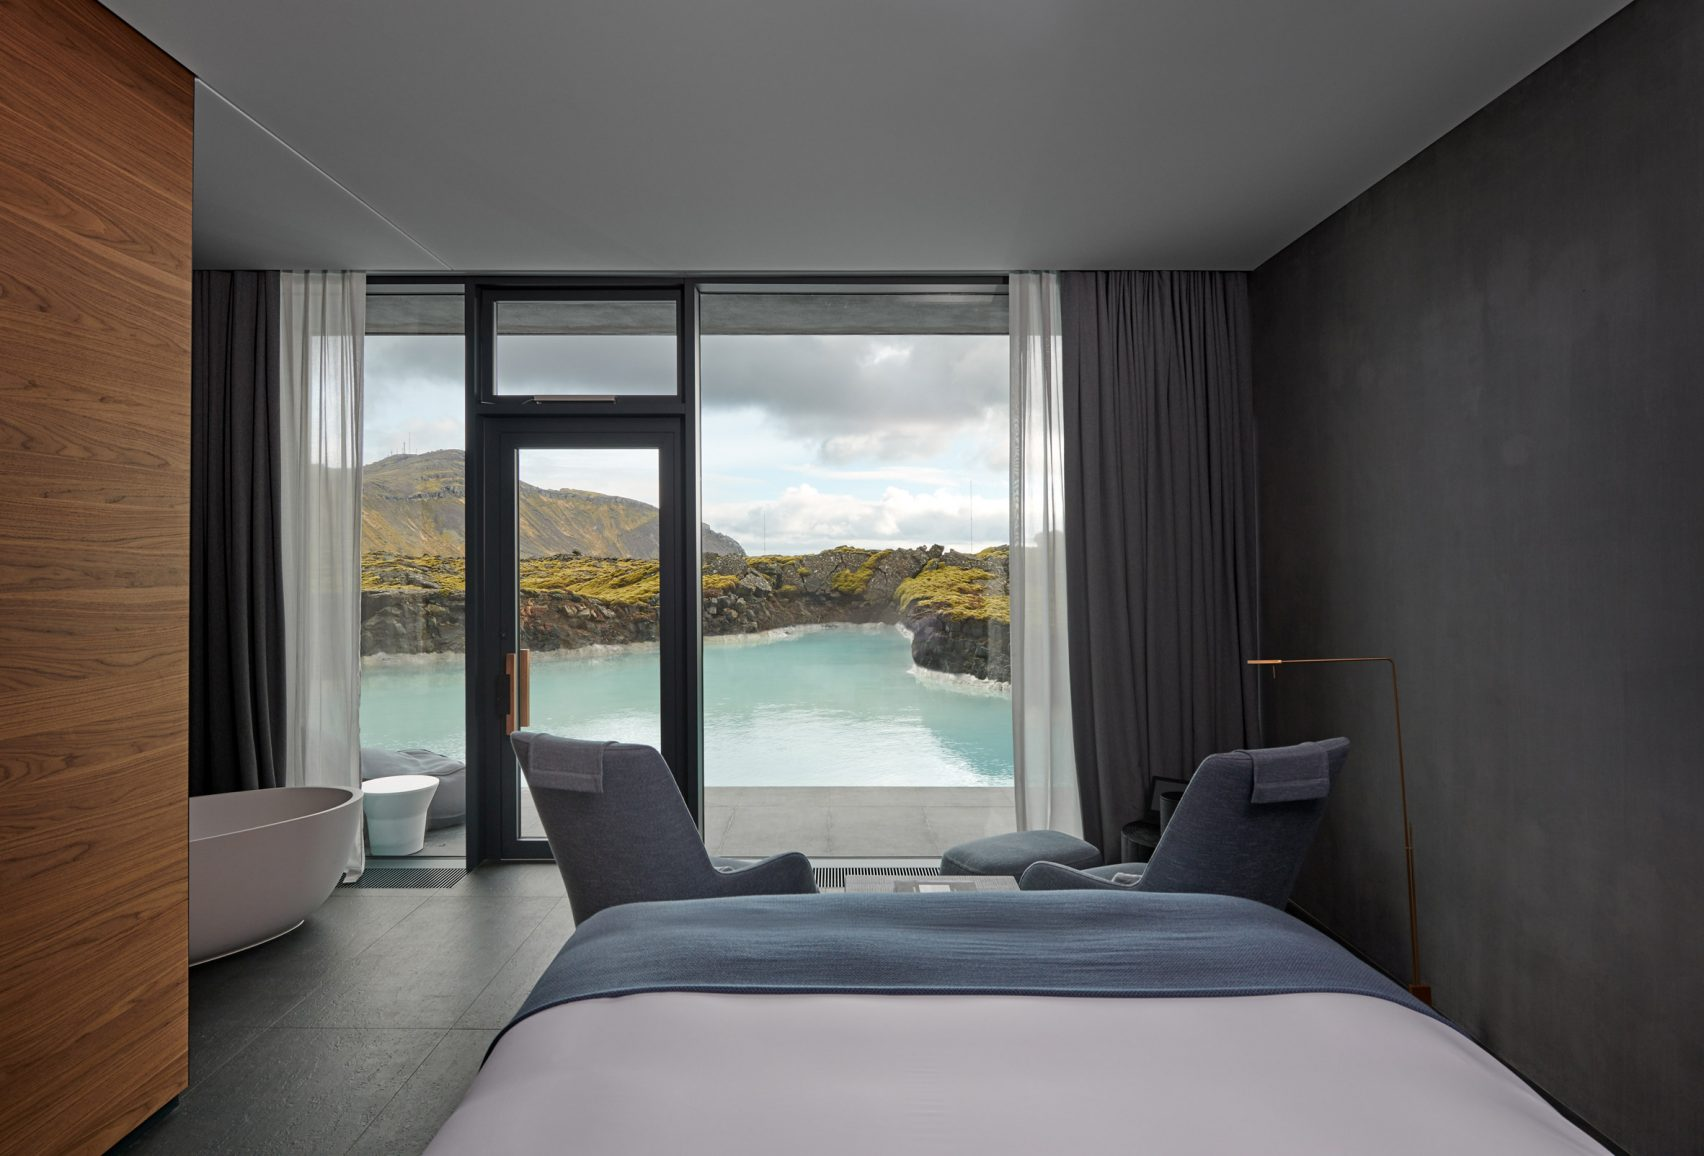 Habitación / The Retreat at Blue Lagoon